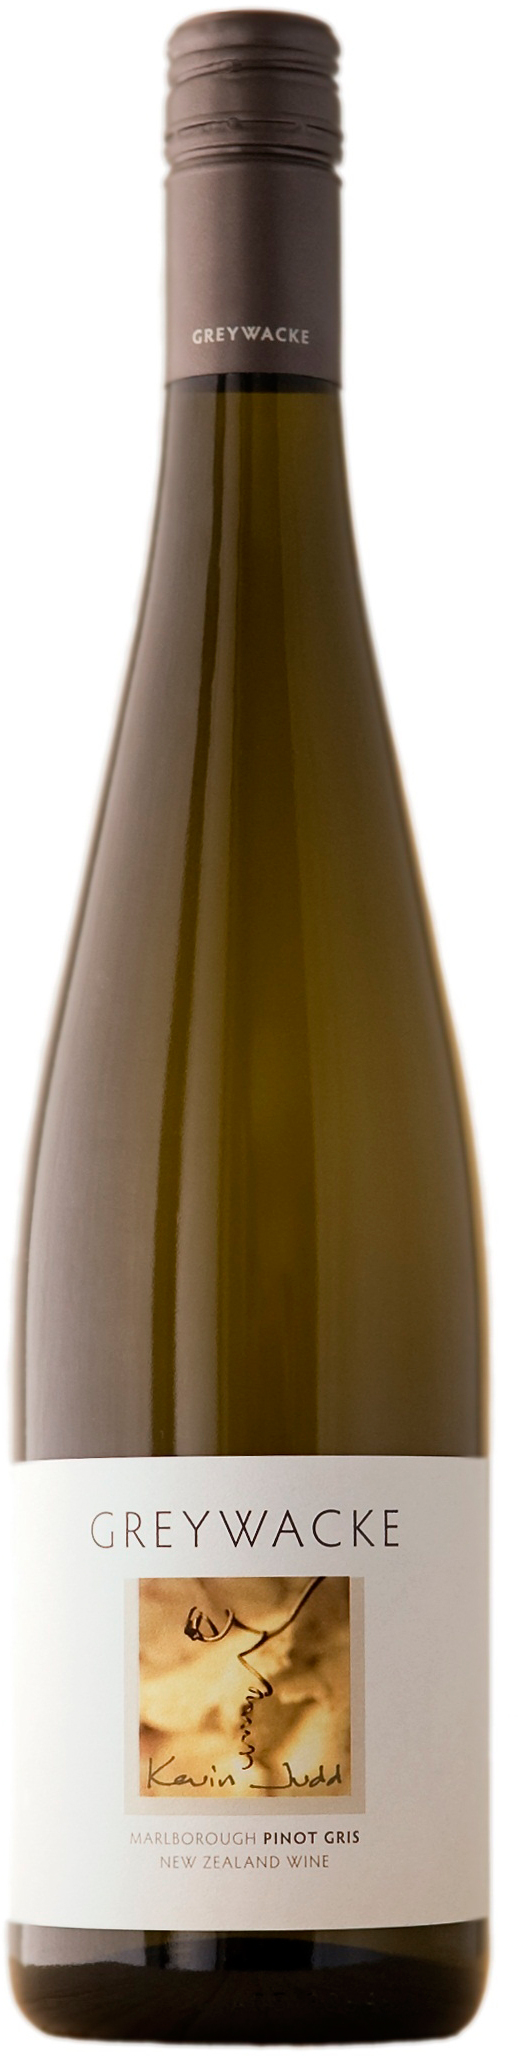 Greywacke, Marlborough Pinot Gris 2016